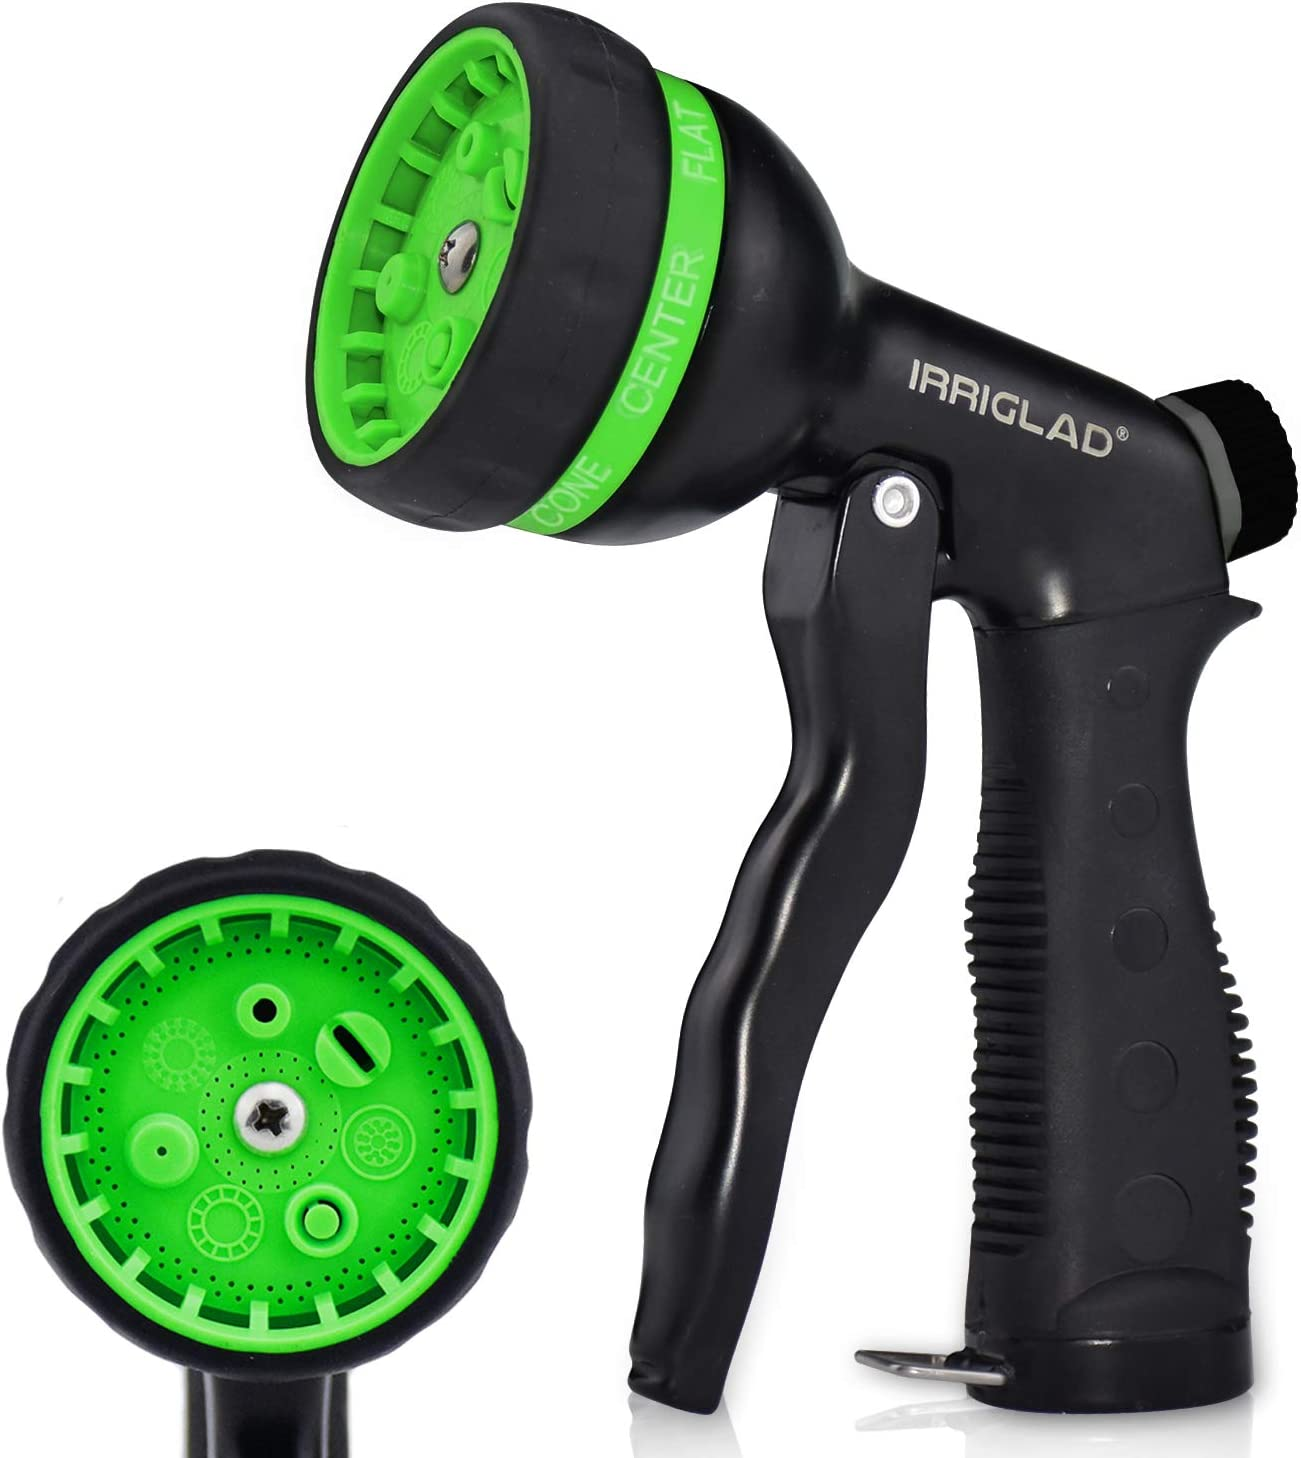 IRRIGLAD Garden Heavy Duty Hose Nozzle, 7 Adjustable Spray Patterns, Comfort Grip, Water Hose Nozzle Gun for Watering Lawns, Washing Cars and Pets